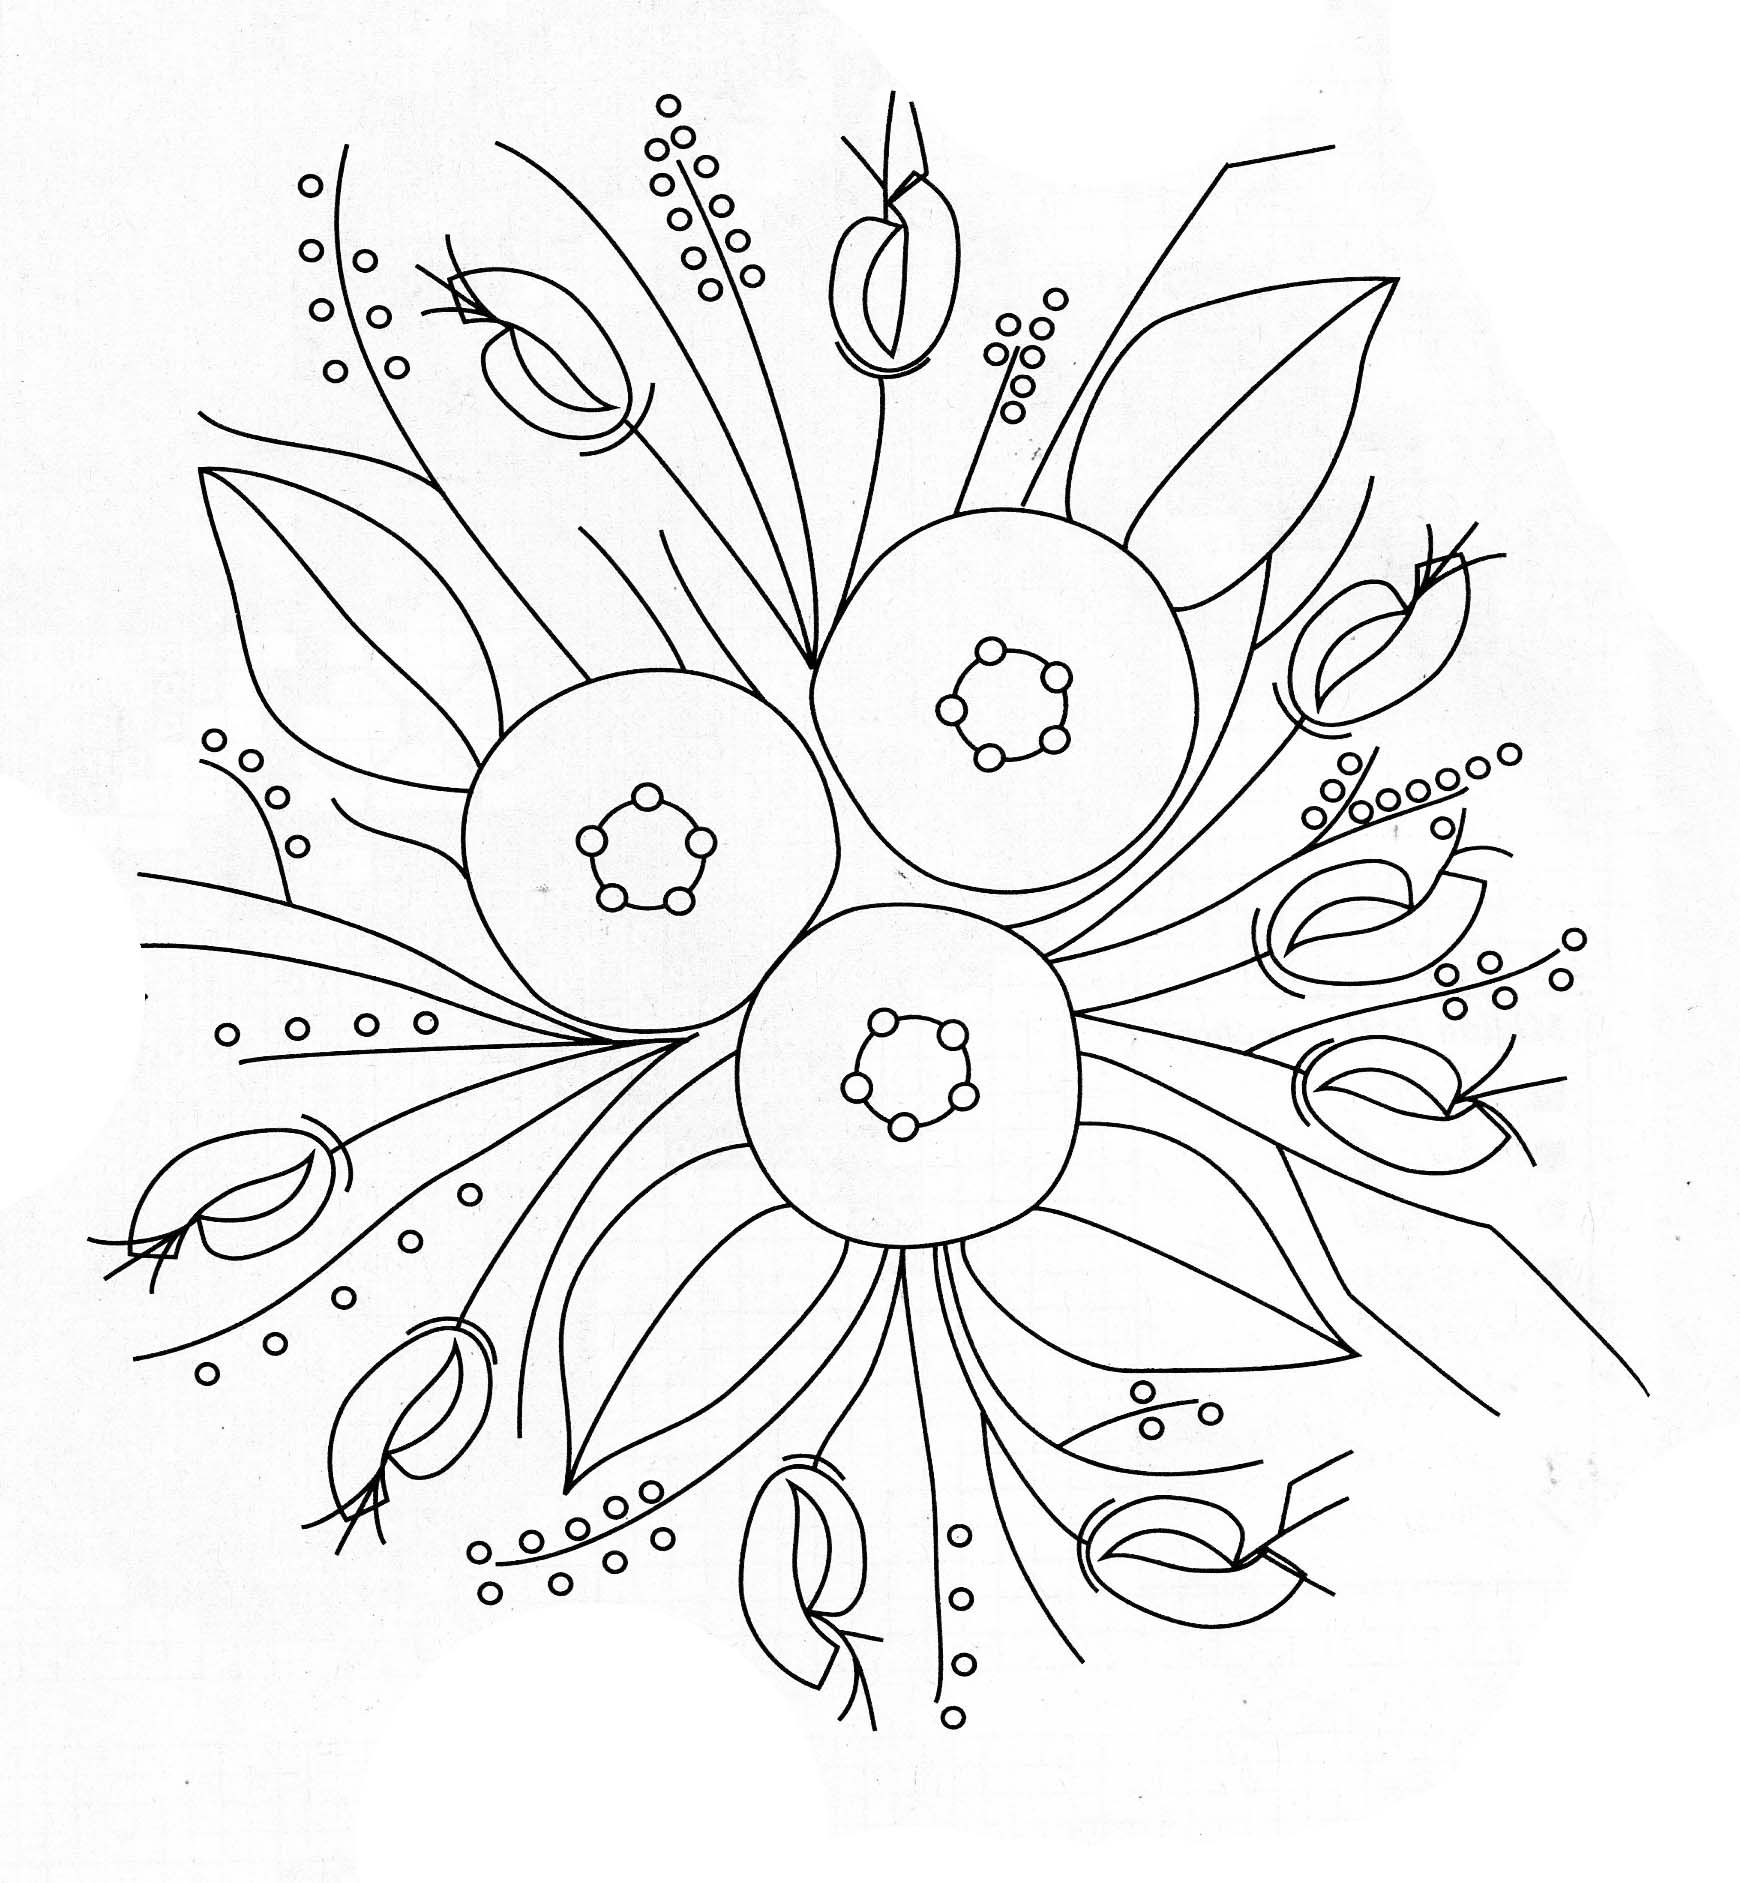 Flower Embroidery Patterns Magnificent Ideas